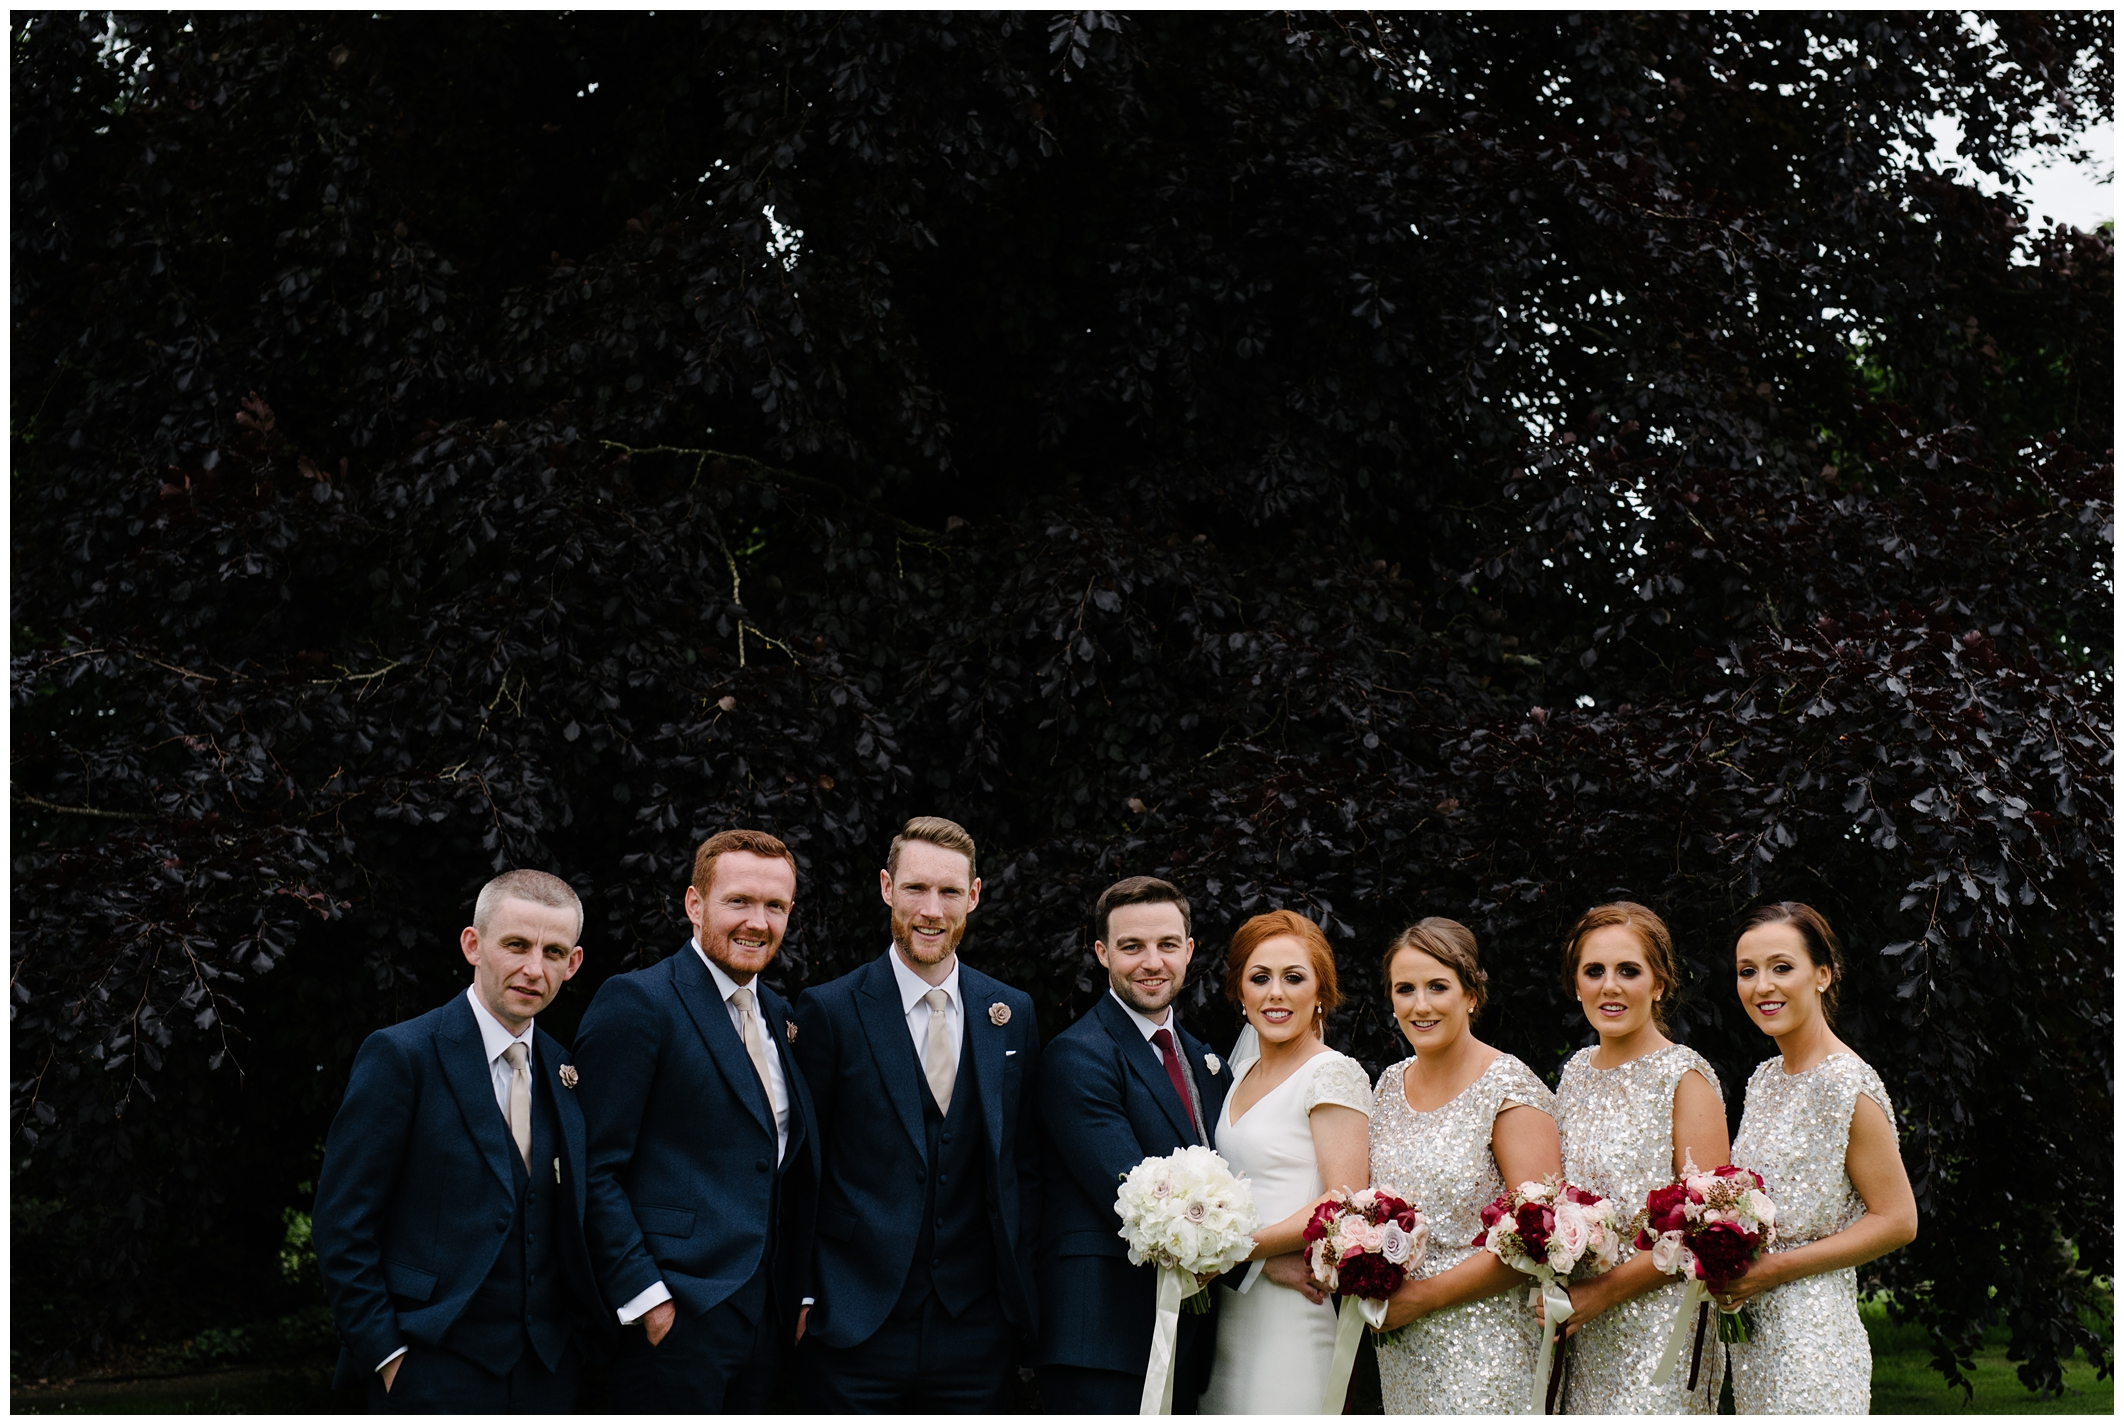 sinead_emmet_farnham_estate_wedding_jude_browne_photography_0101.jpg